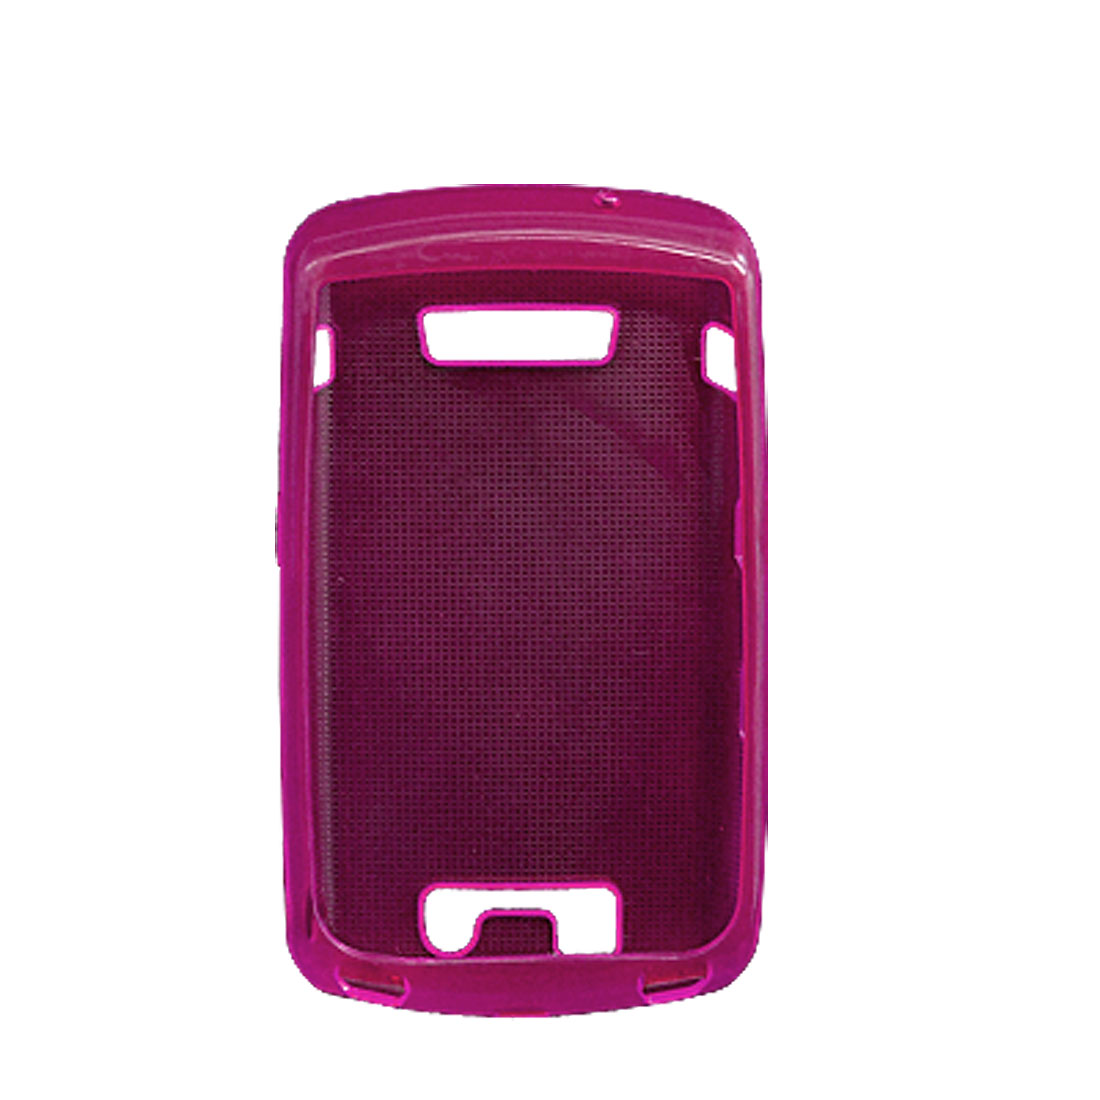 Amaranth Pink Case Protector for Blackberry 9500 9530